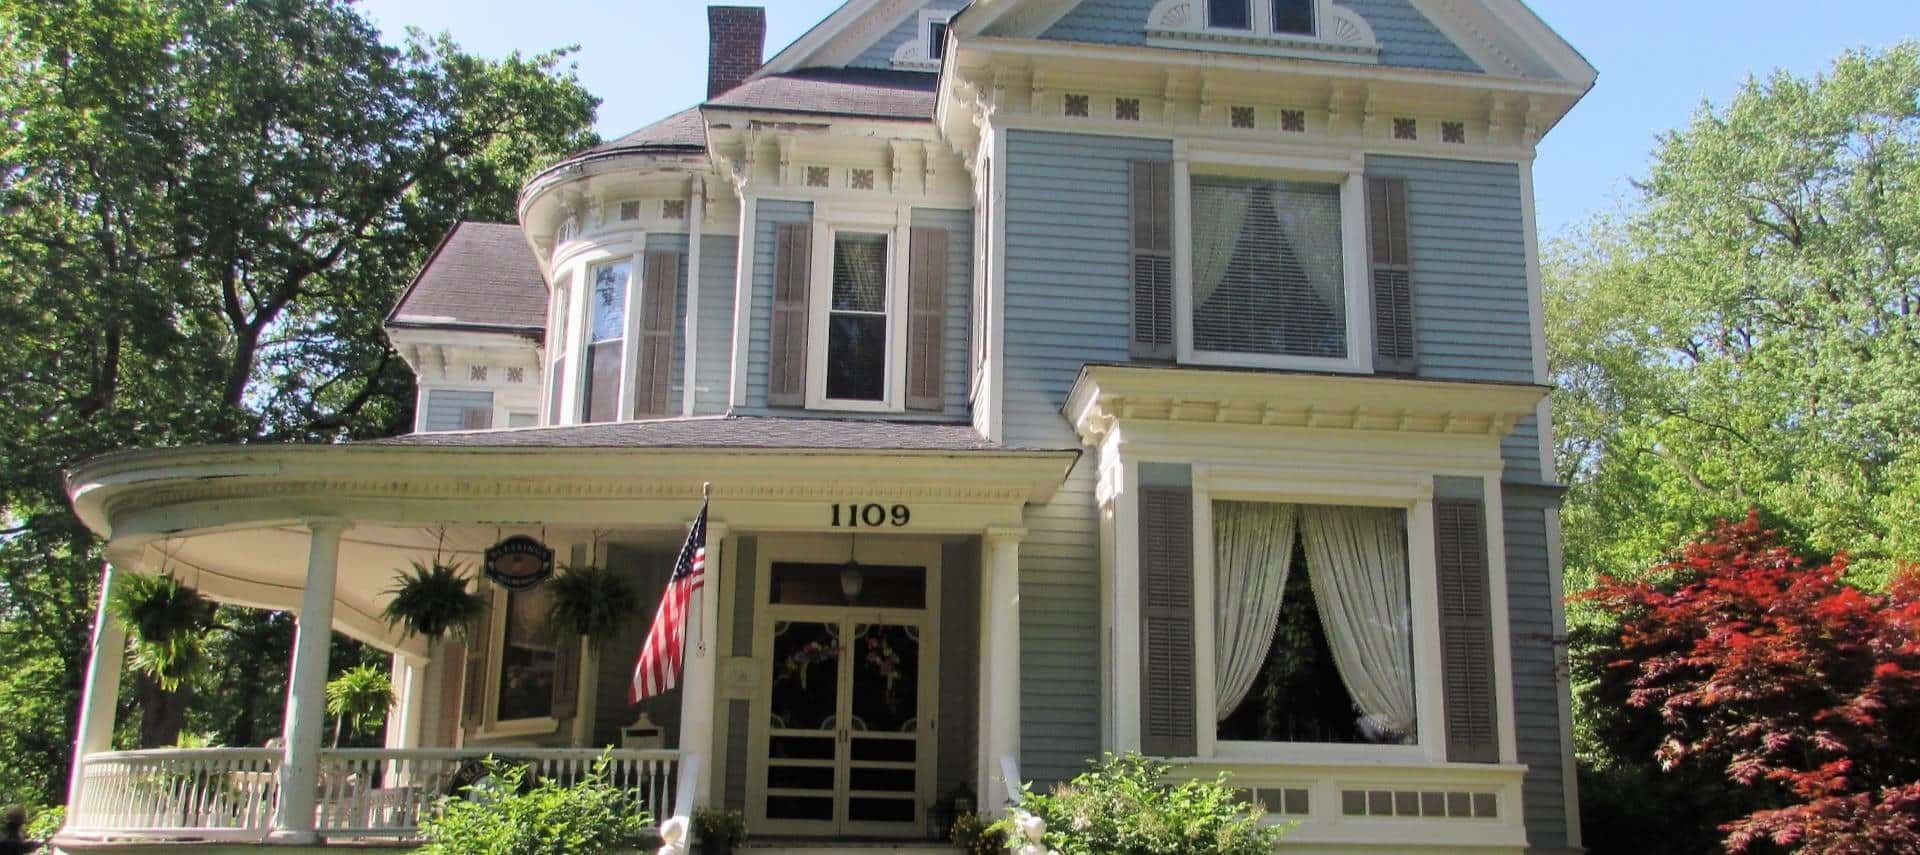 Front exterior view of the property painted blue and white with dark shutters, wrap around porch, American flag, and surrounded by green trees